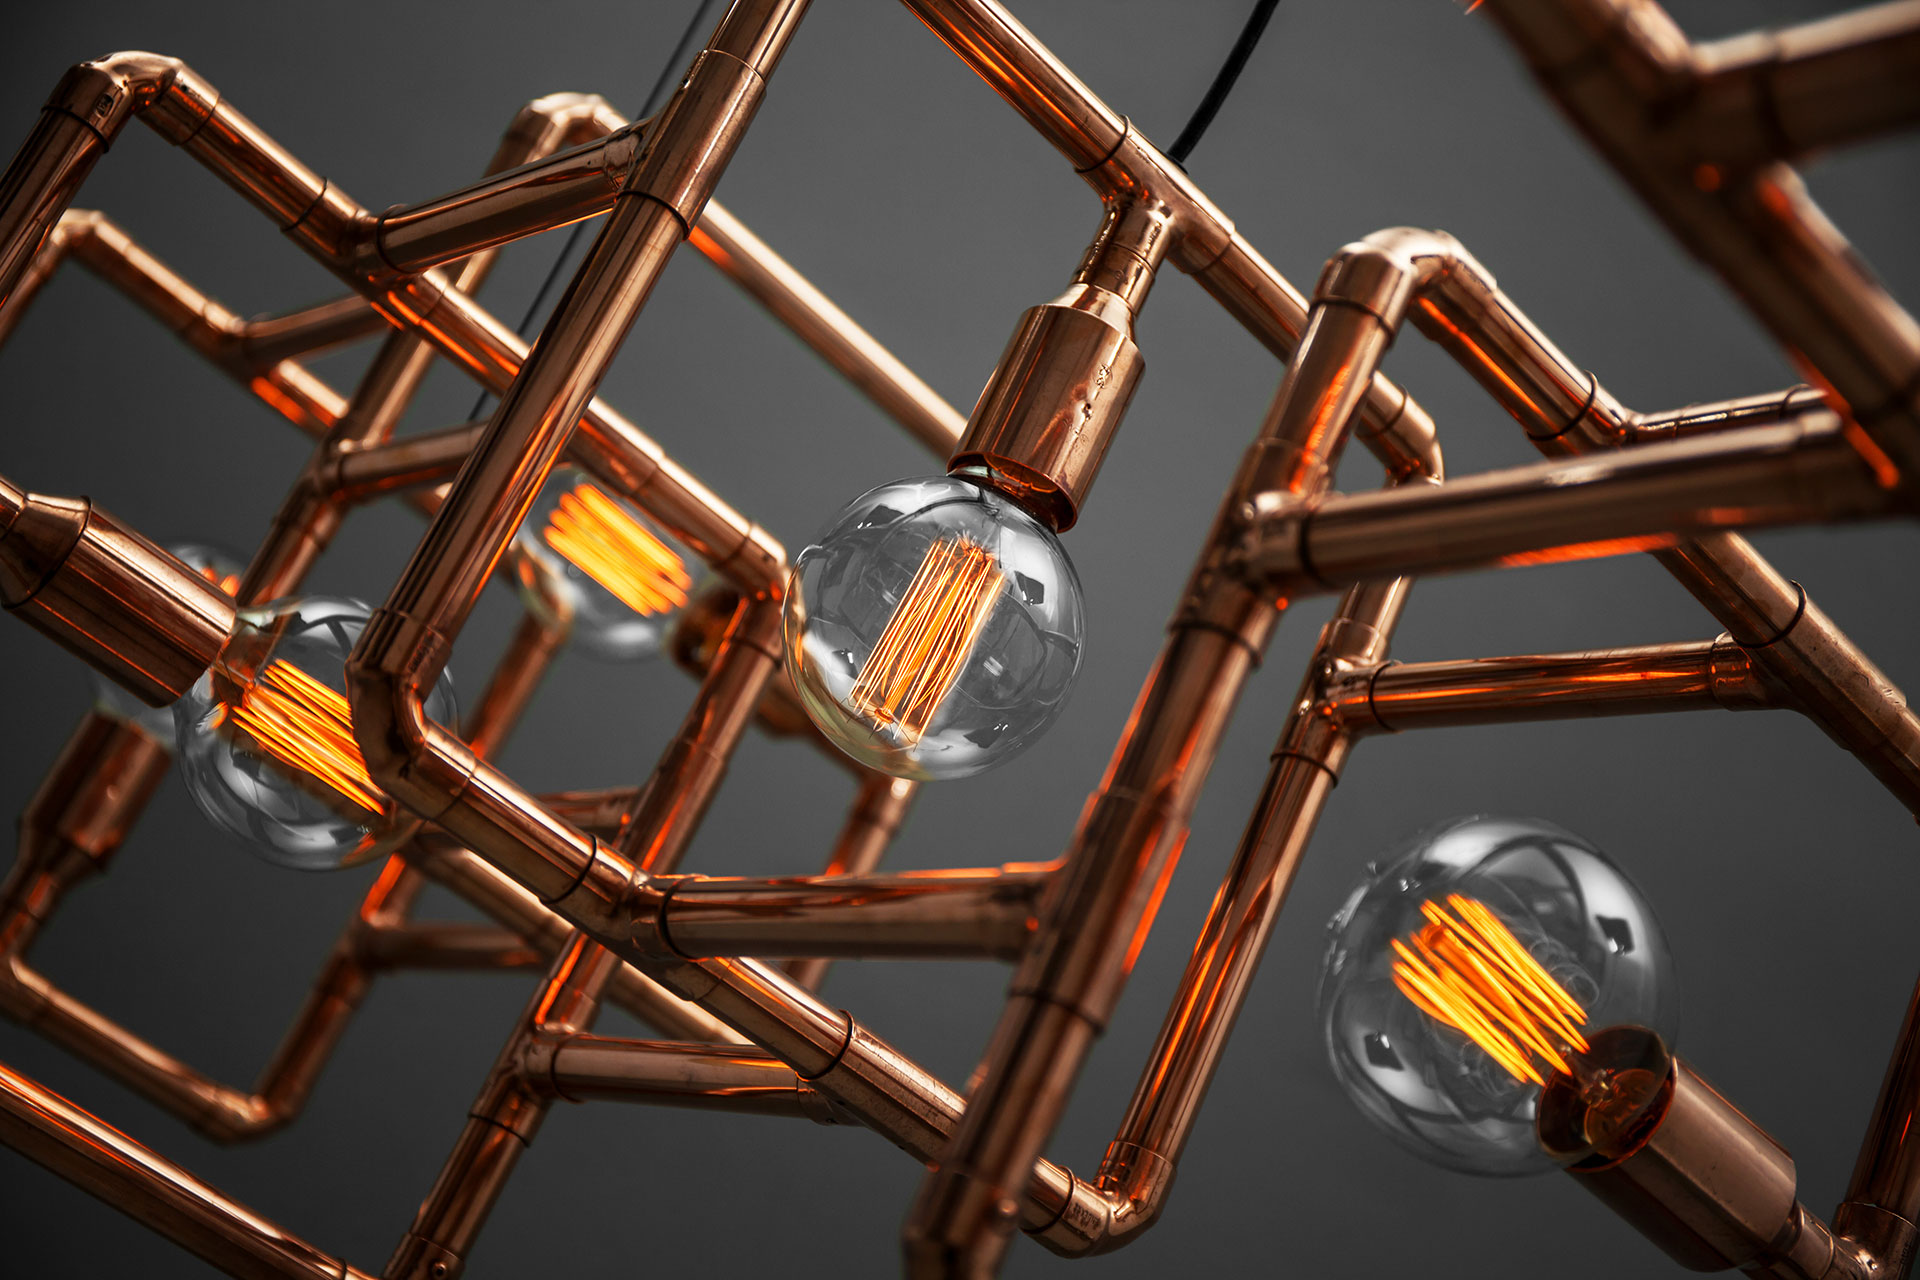 Unique ceiling lamp inspired by copper pipe art